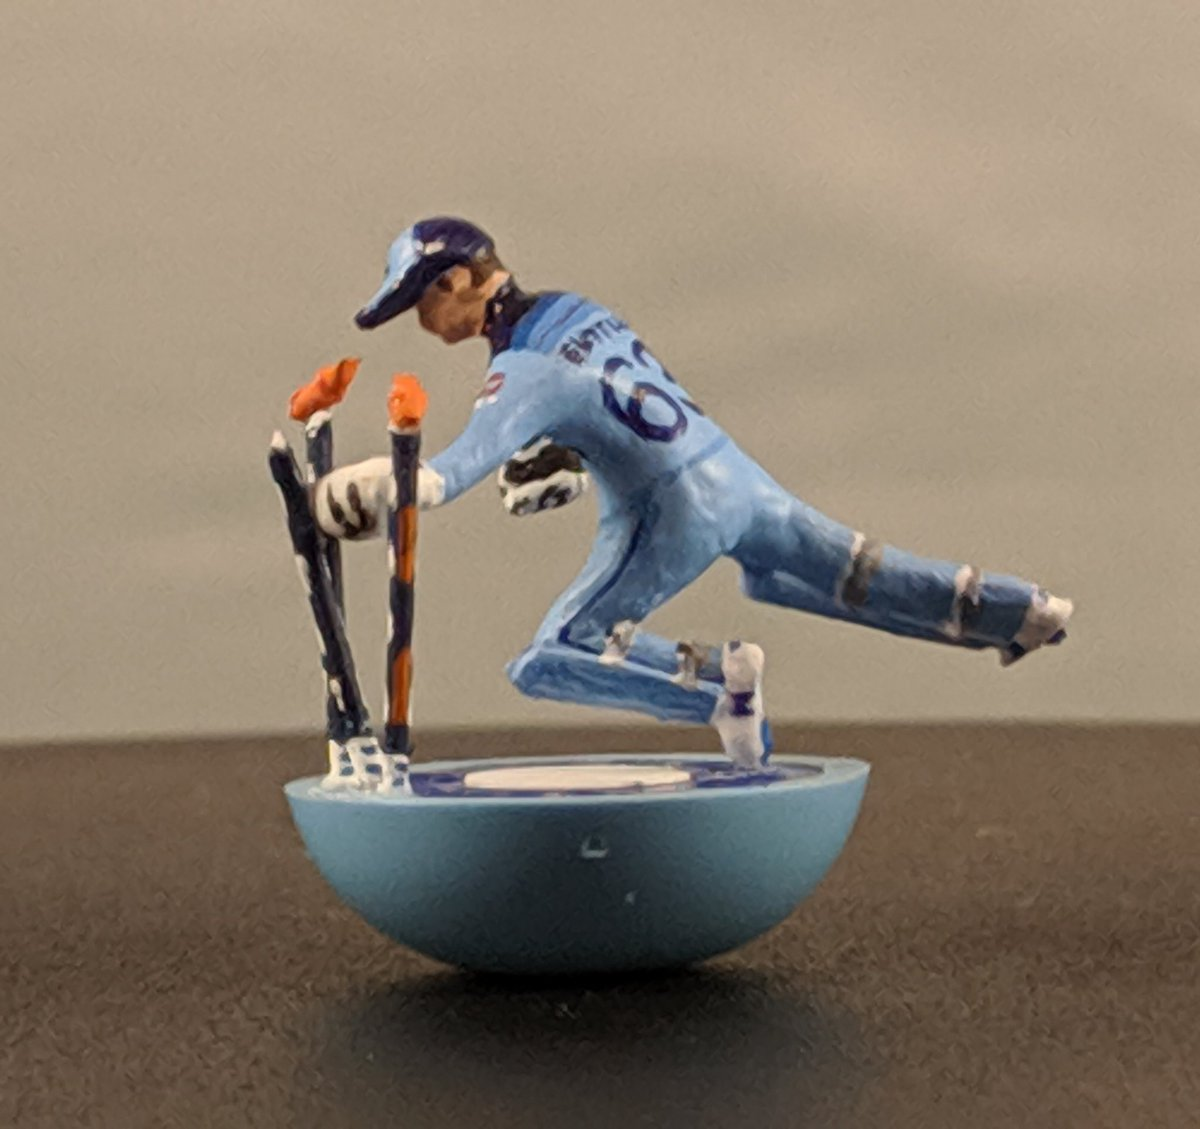 The moment that ended England's long wait to be Cricket World Champions in probably the most intense cricket game ever recreated as a Subbuteo figure. #Subbuteolegends #subbuteo #CricketWorldCupFinal #cricket #ecb #josbuttler #handmade #hobby @josbuttler @ECB_cricket #tailenders<br>http://pic.twitter.com/sHQ6Or1Z2j